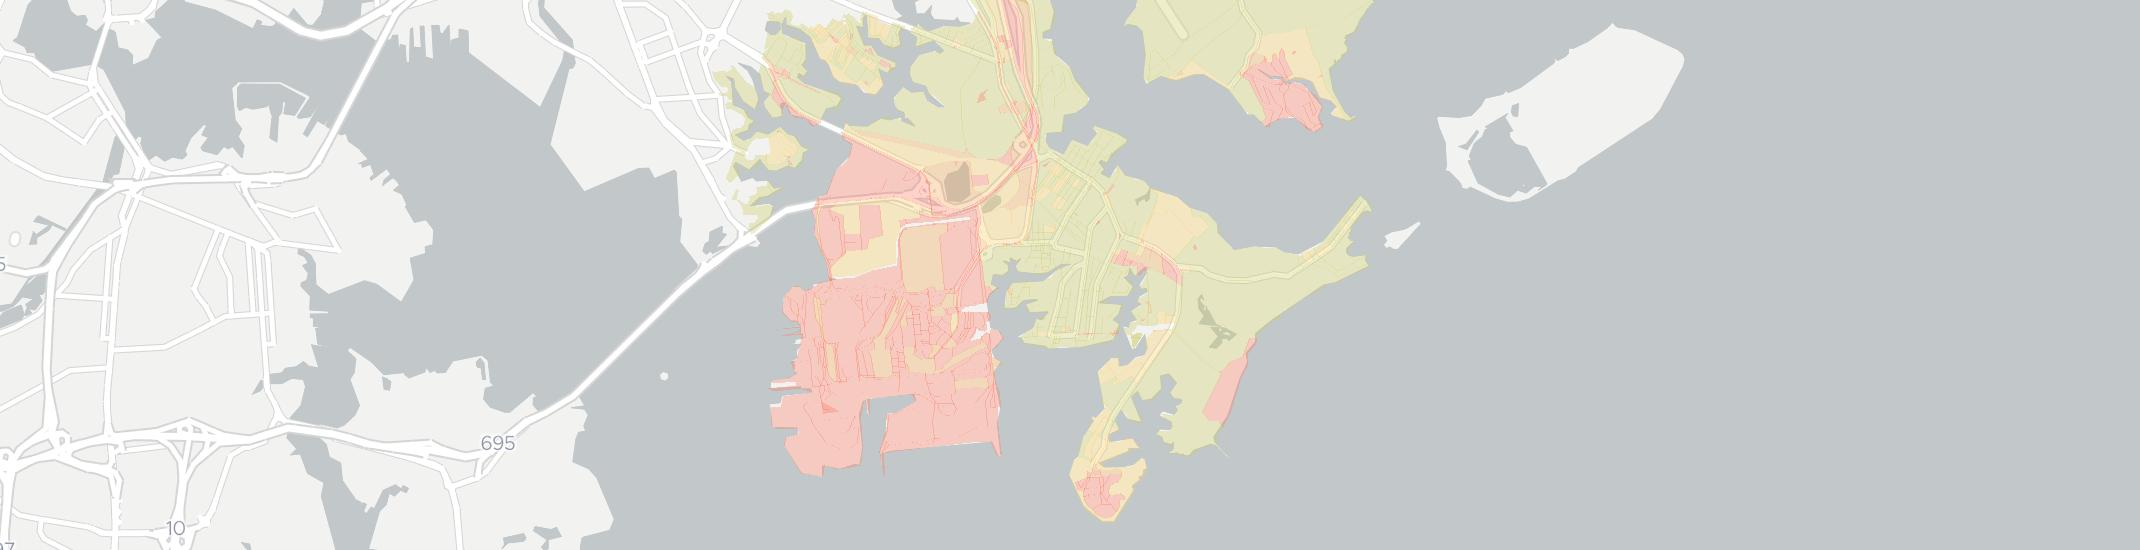 Edgemere Internet Competition Map. Click for interactive map.